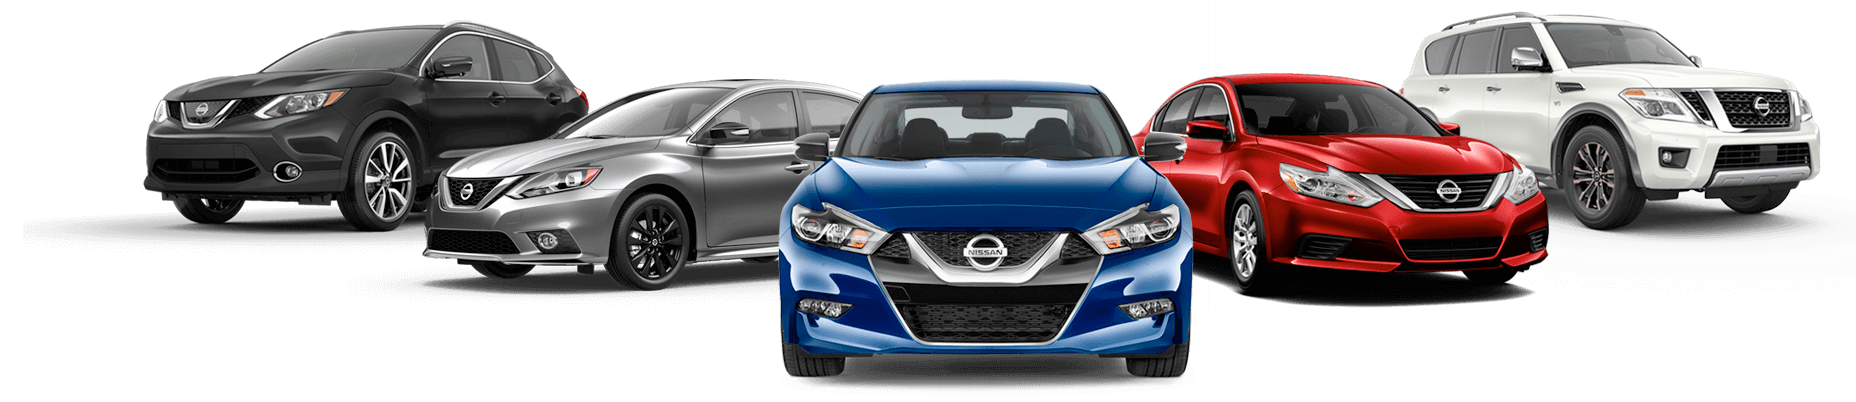 Nissan certified collision repair car line up